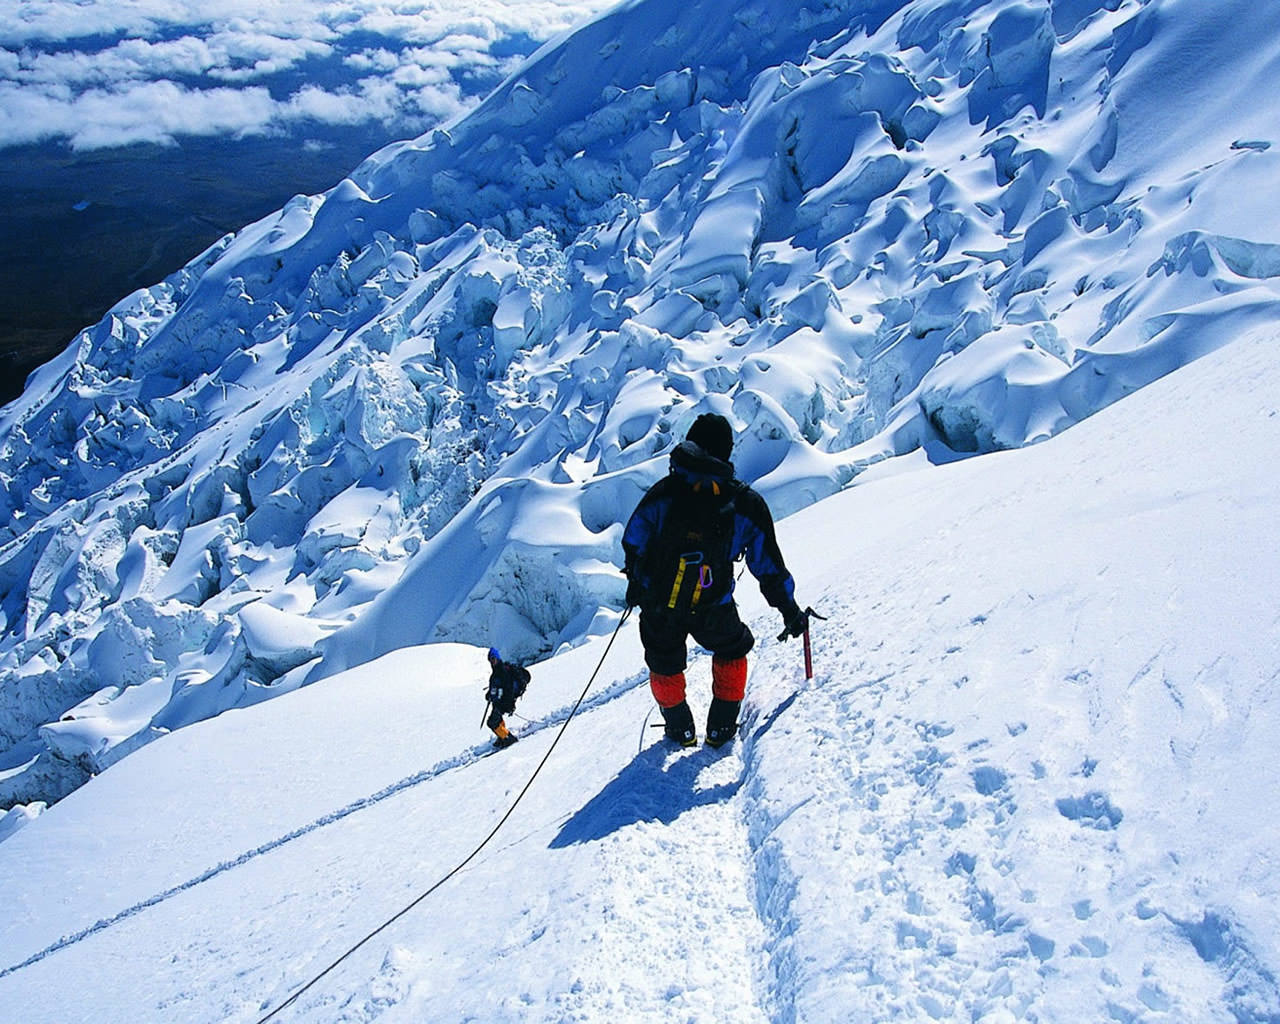 ice climbing wallpaper - photo #15